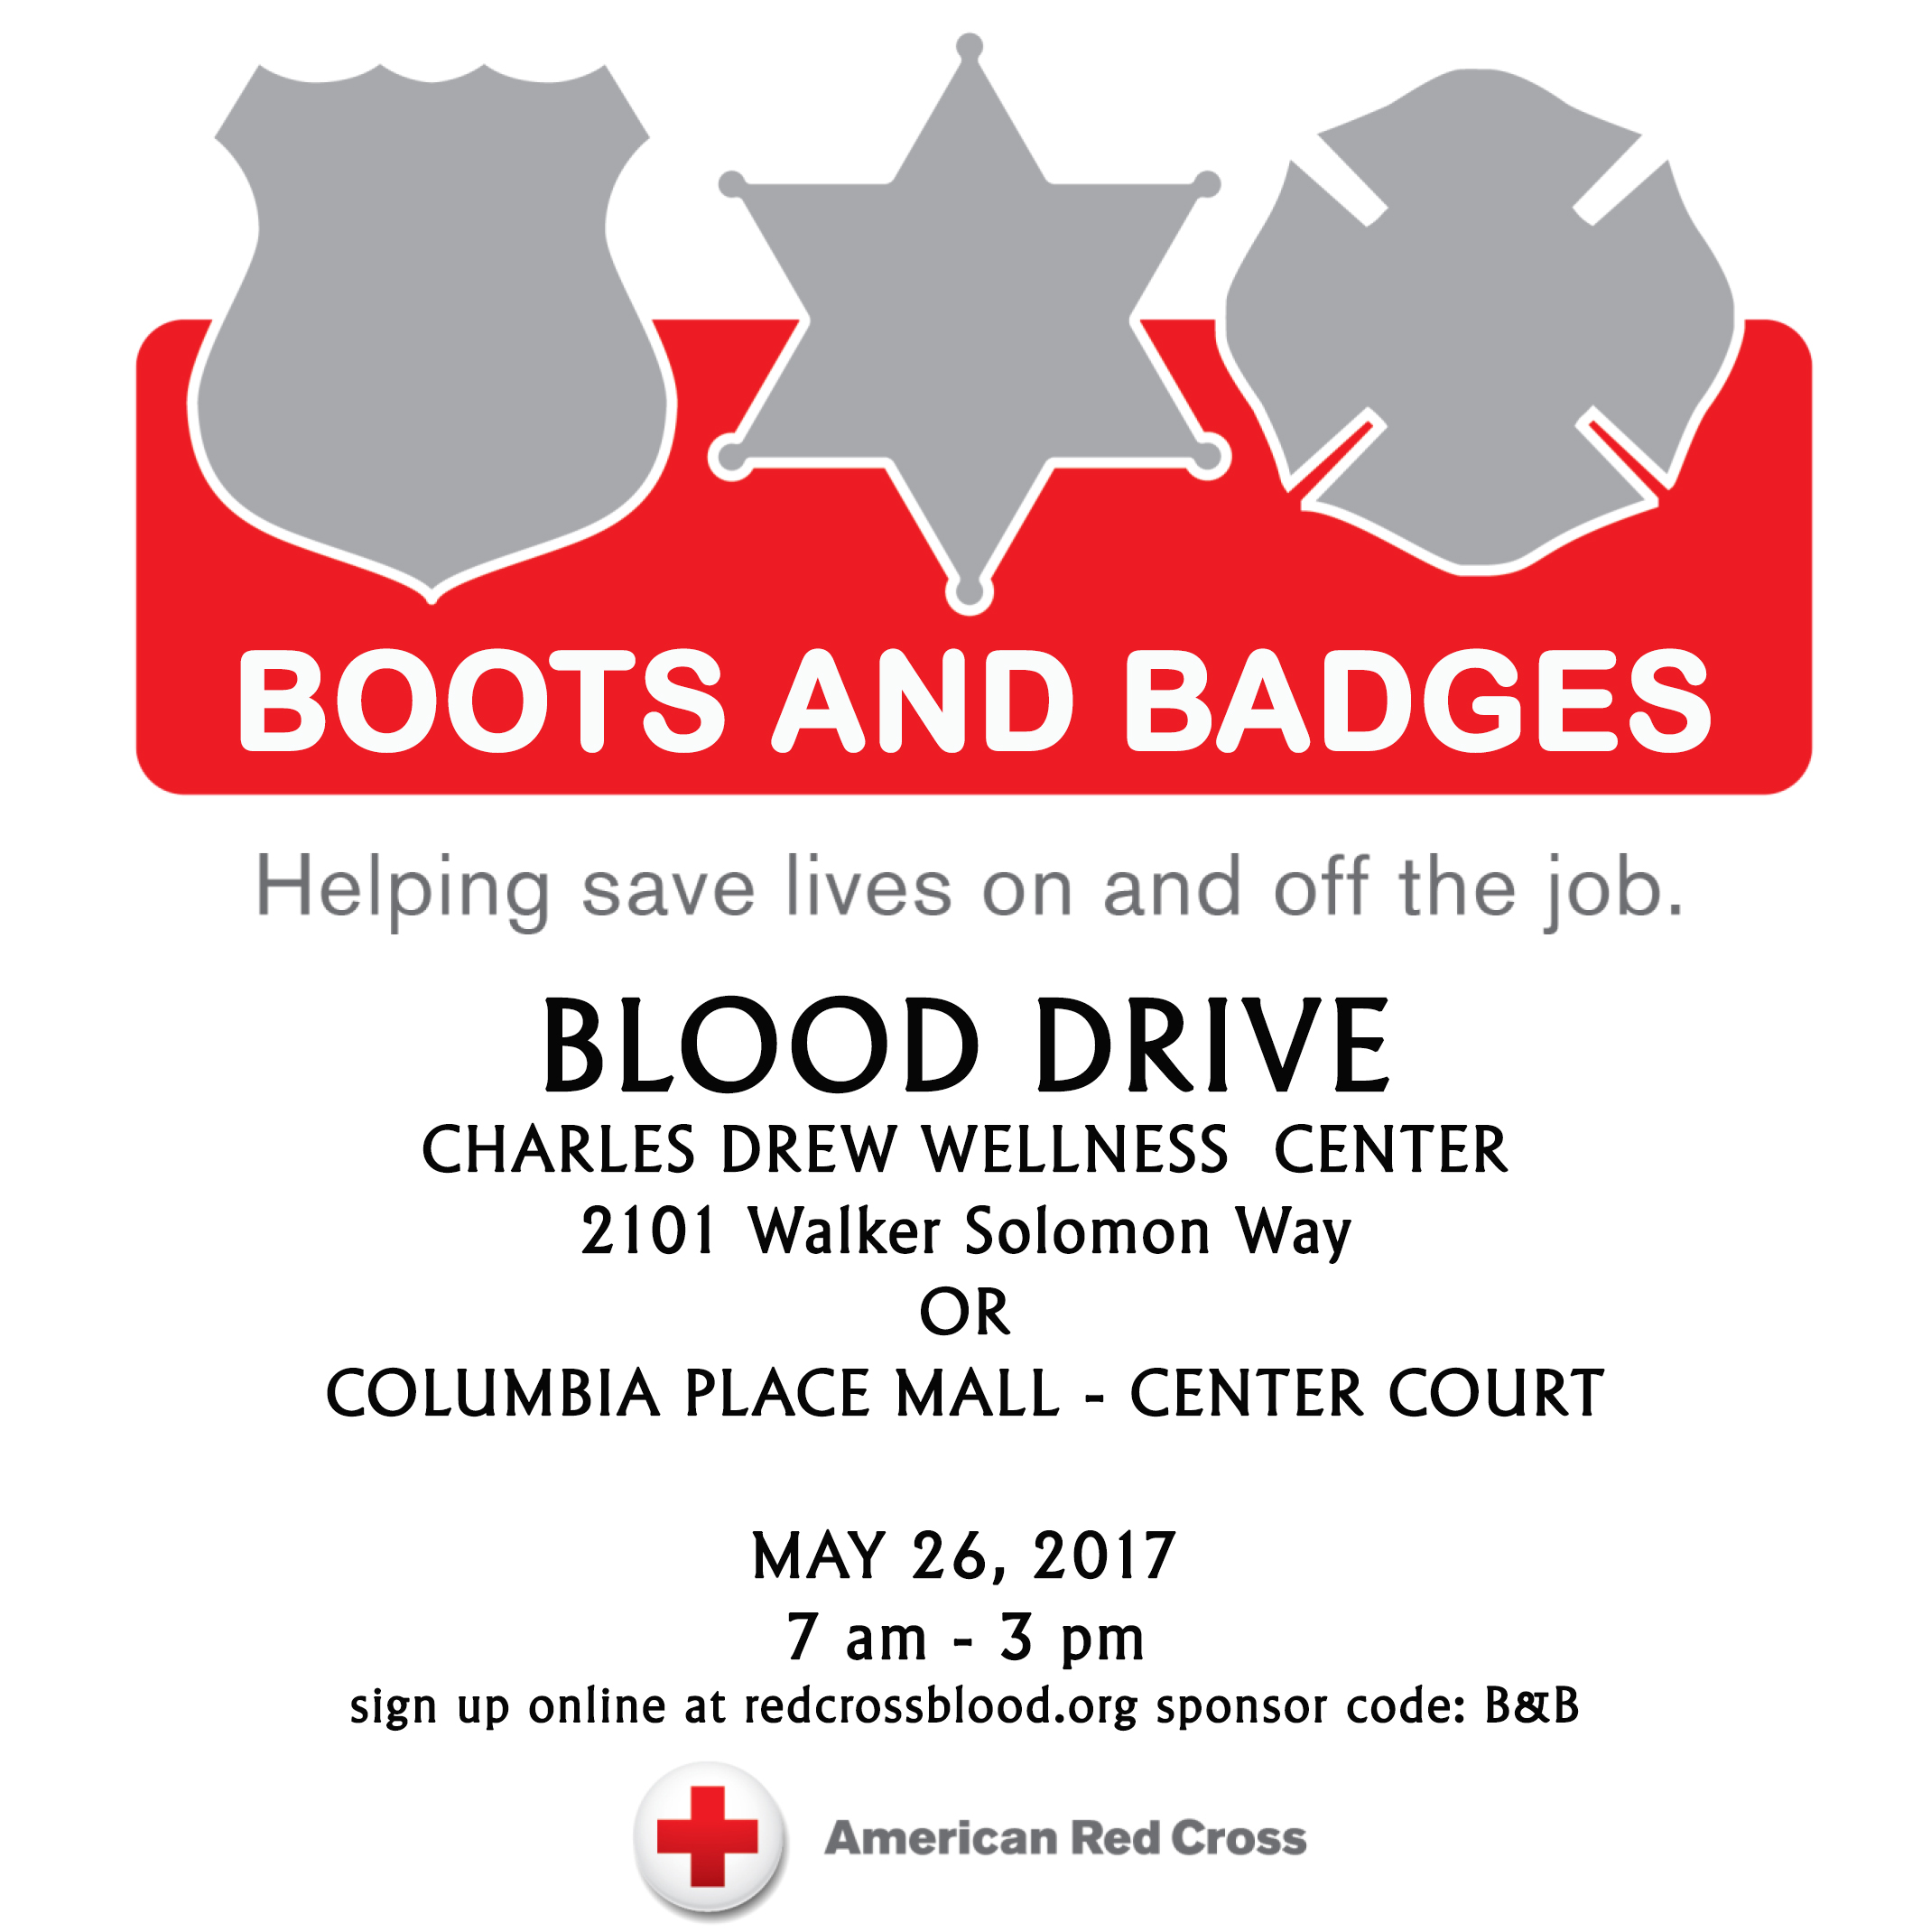 boots and badges flyer